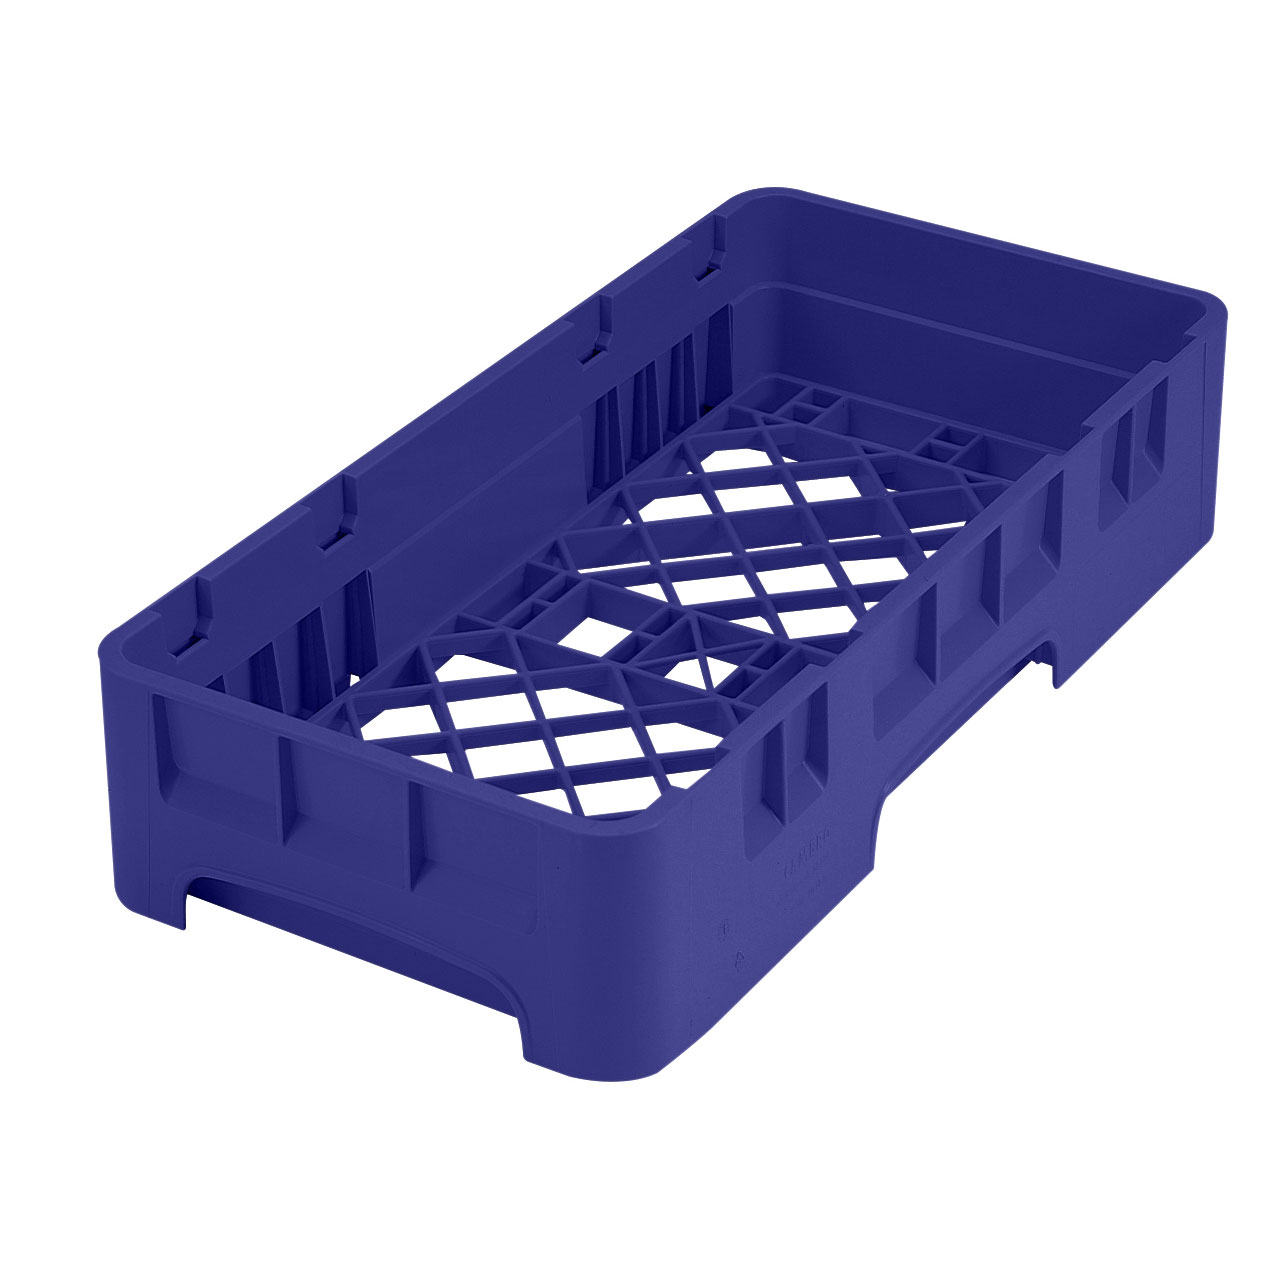 Cambro HBR258186 dishwasher rack, open